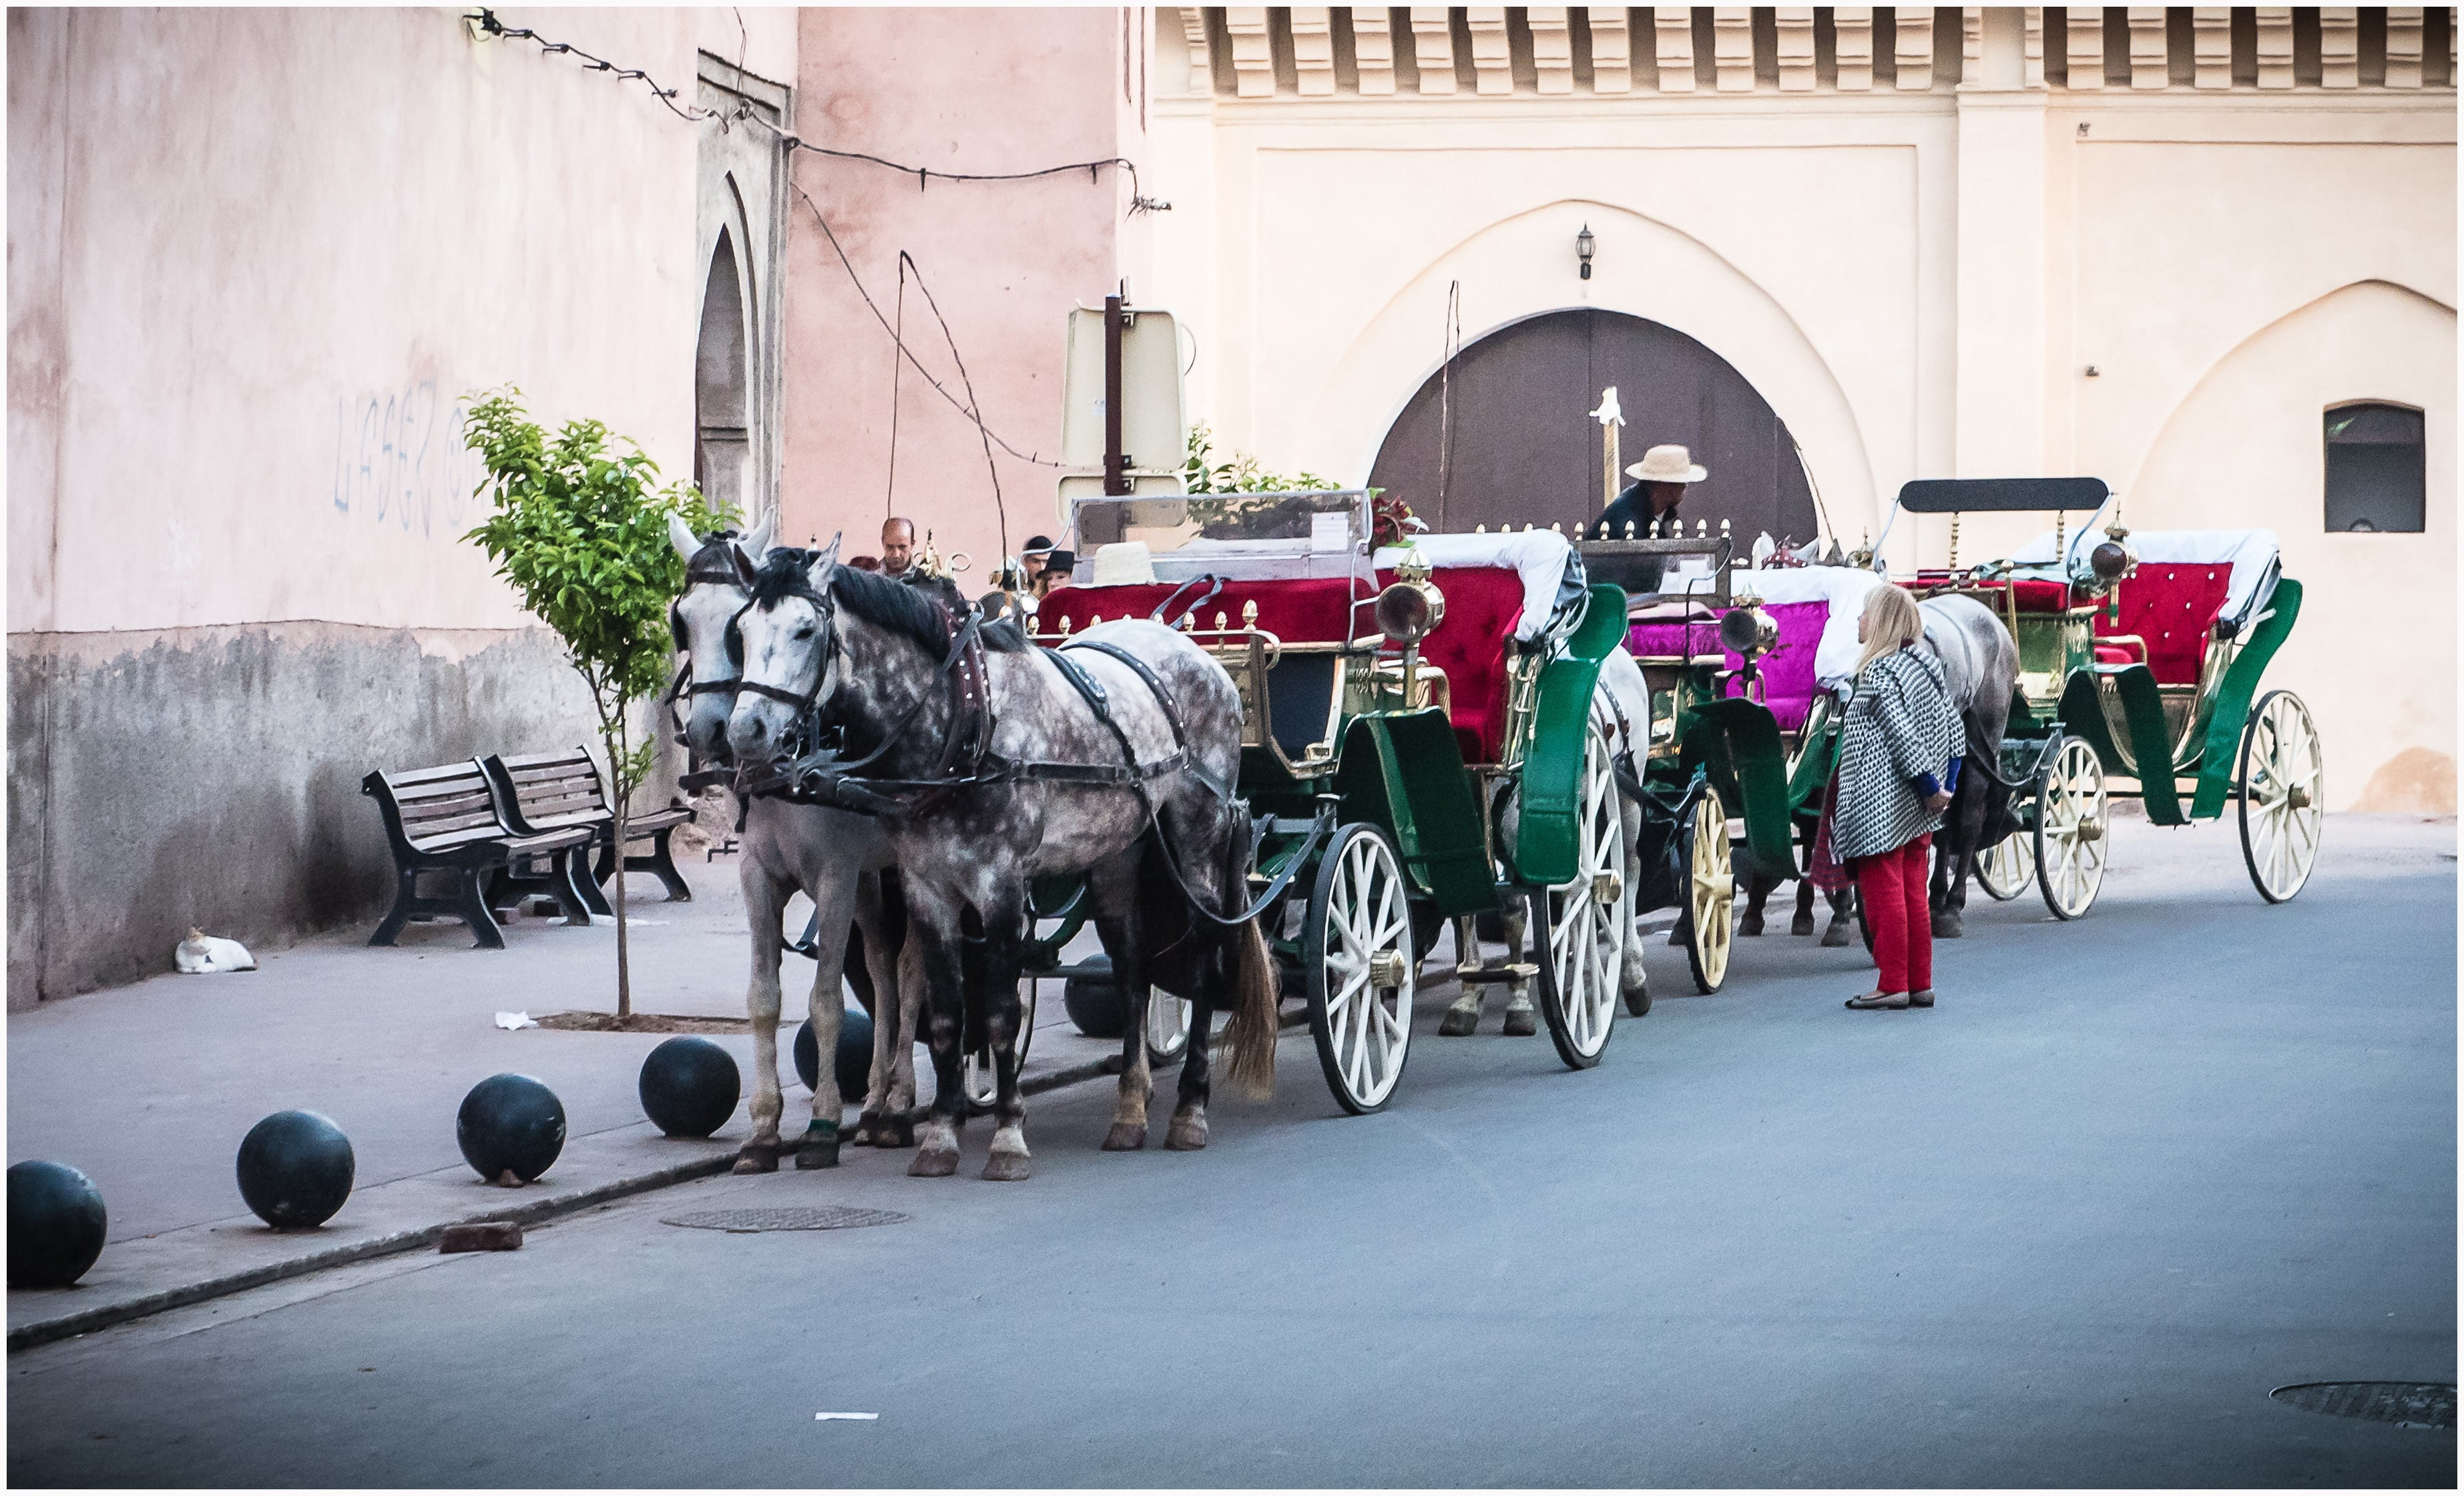 Horse-drawn tourist carriages awaiting passengers at Jemaa el-Fnaa square, Marrakesh